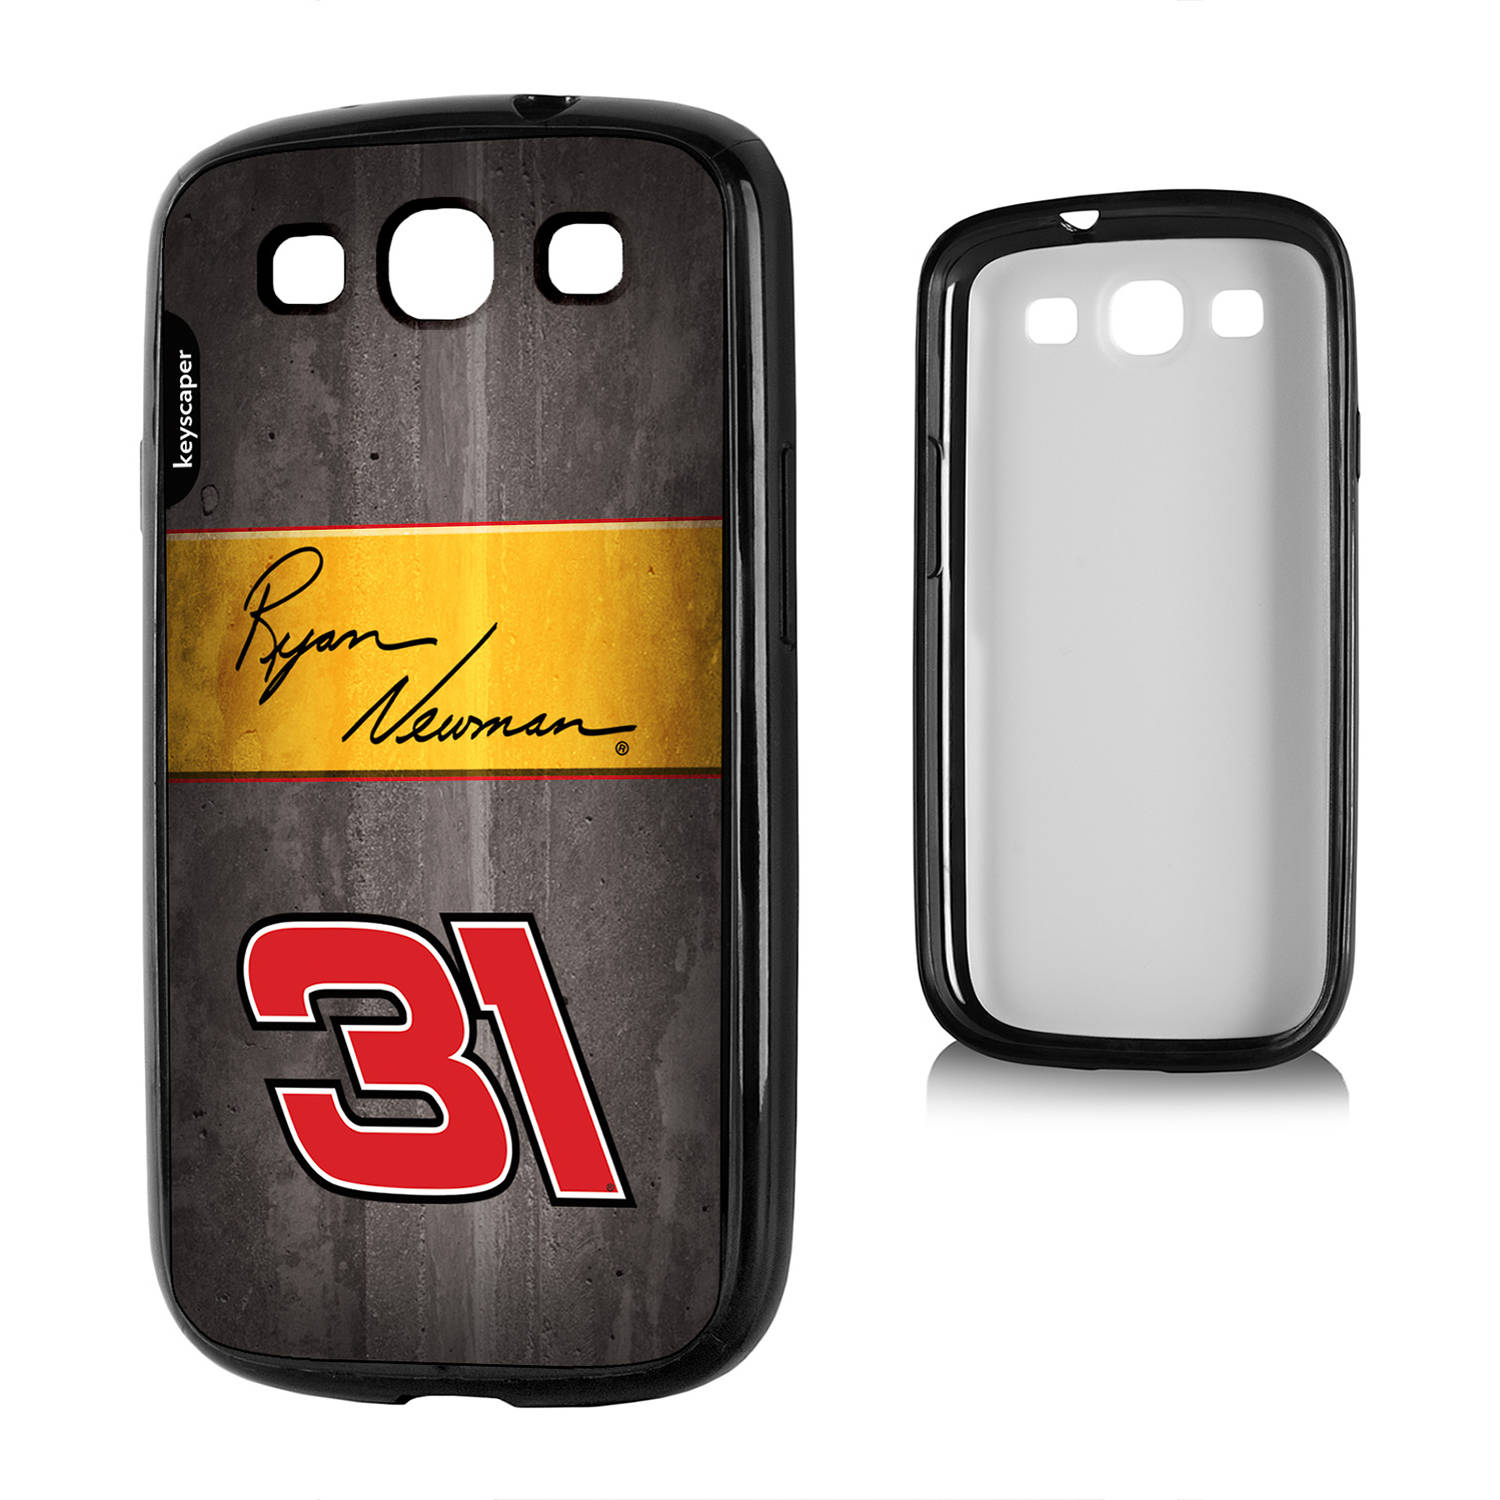 Ryan Newman #31 Galaxy S3 Bumper Case